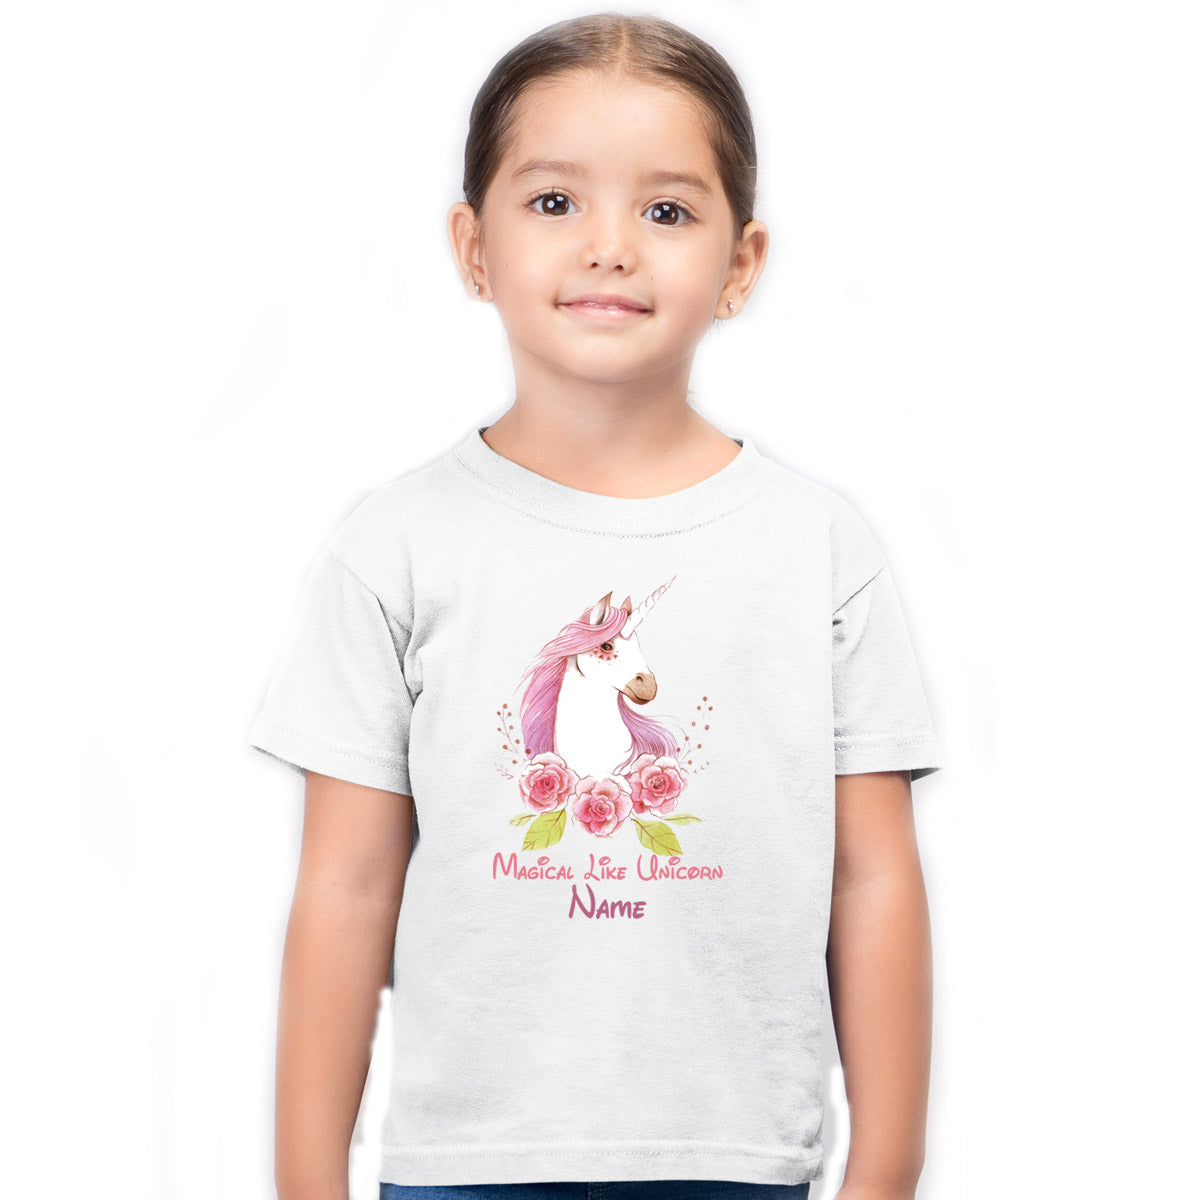 Sprinklecart Magical Like Unicorn Printed Custom Name Printed Kids Poly-Cotton Tshirt (White)